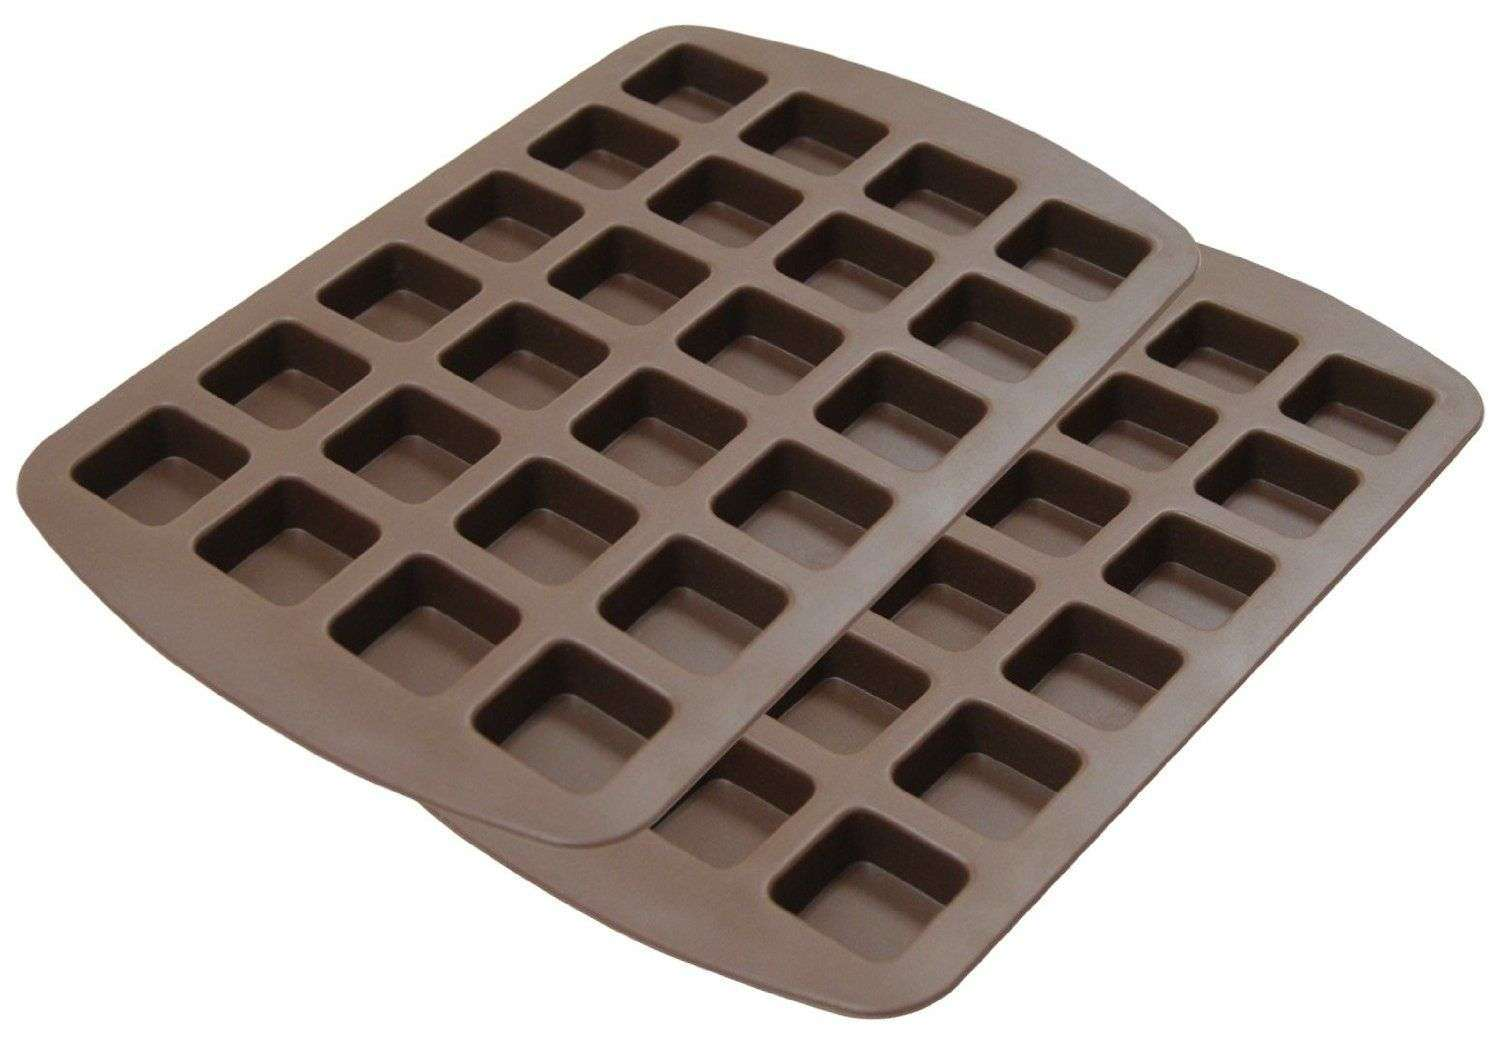 Cups 24-Cavity Silicone Chocolate Candy Mold Muffin